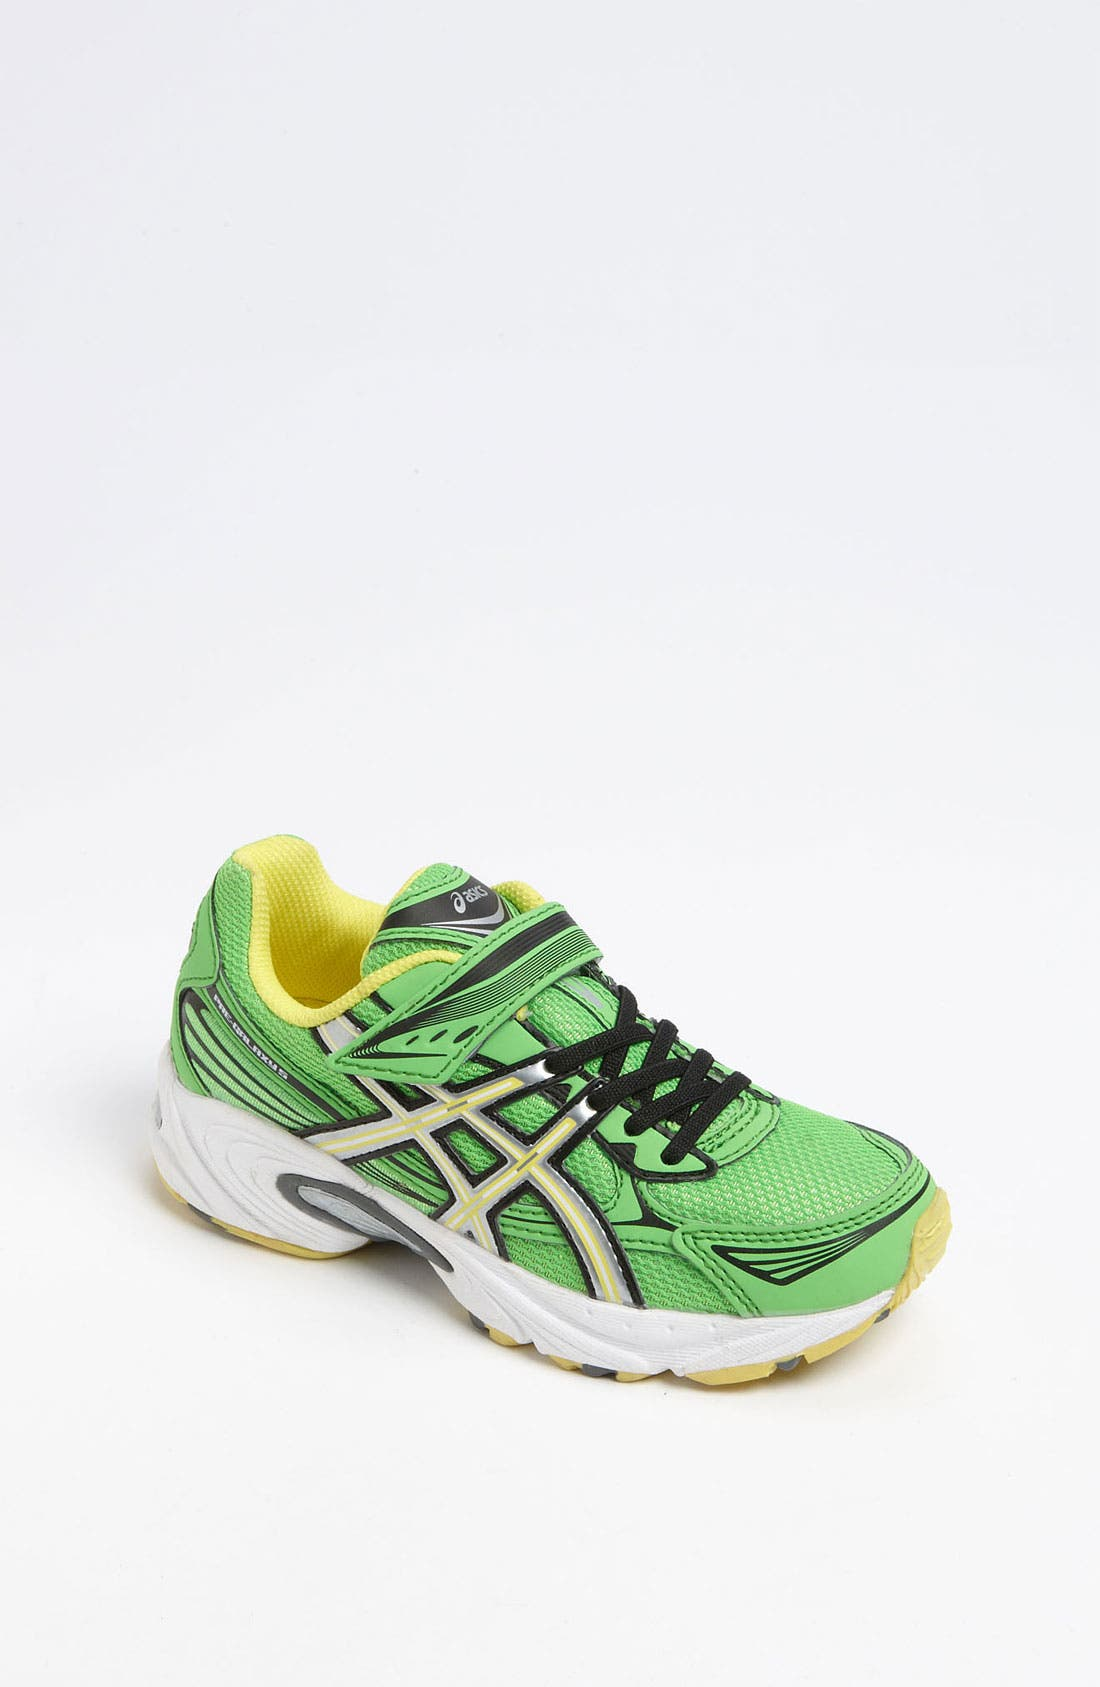 Alternate Image 1 Selected - ASICS® 'Pre-Galaxy 5' Training Shoe (Toddler & Little Kid)